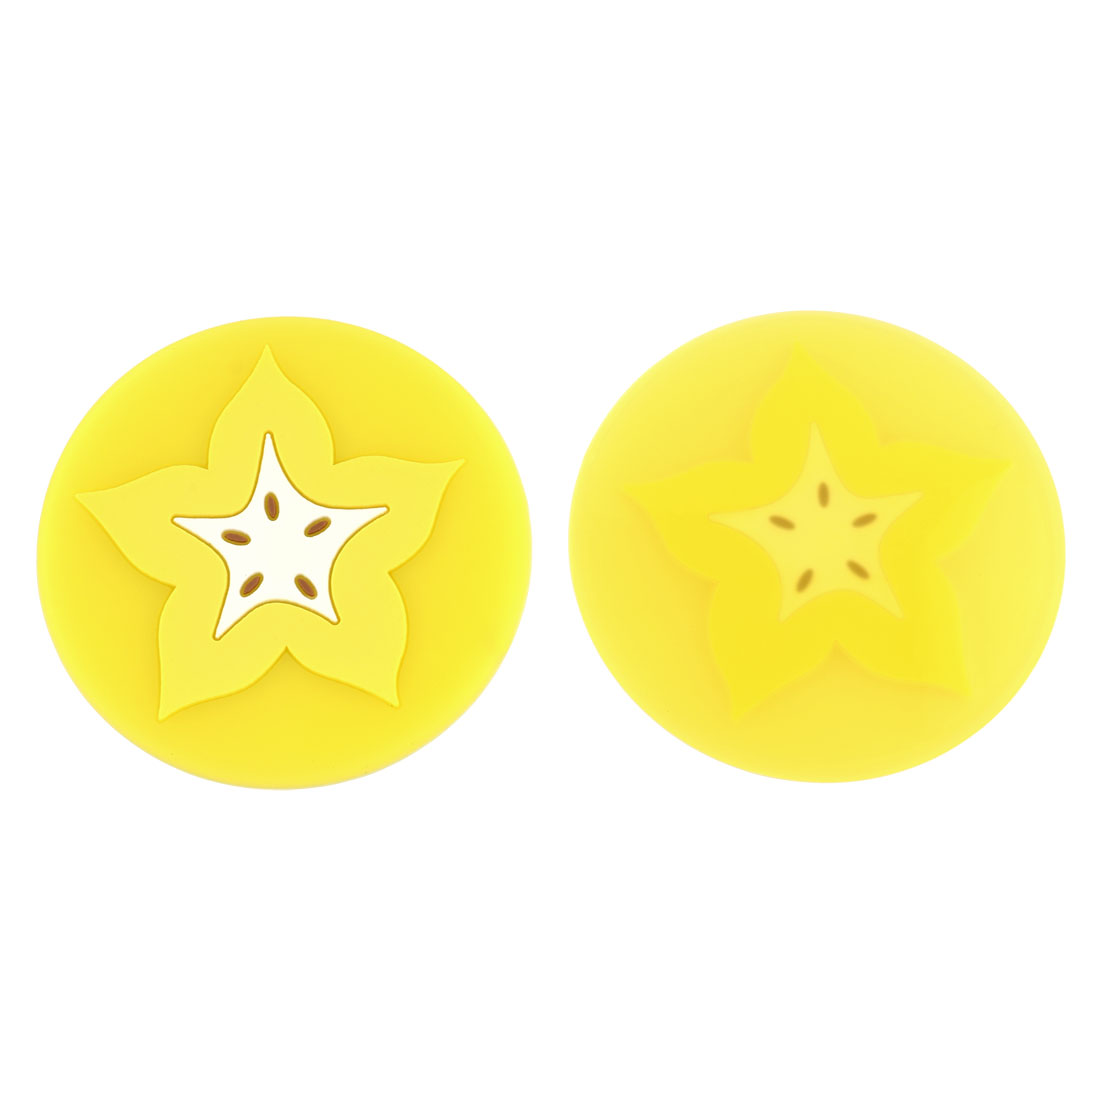 Household Silicone Fruit Shaped Teapot Bottle Cup Coasters Mat Yellow White 2 Pcs